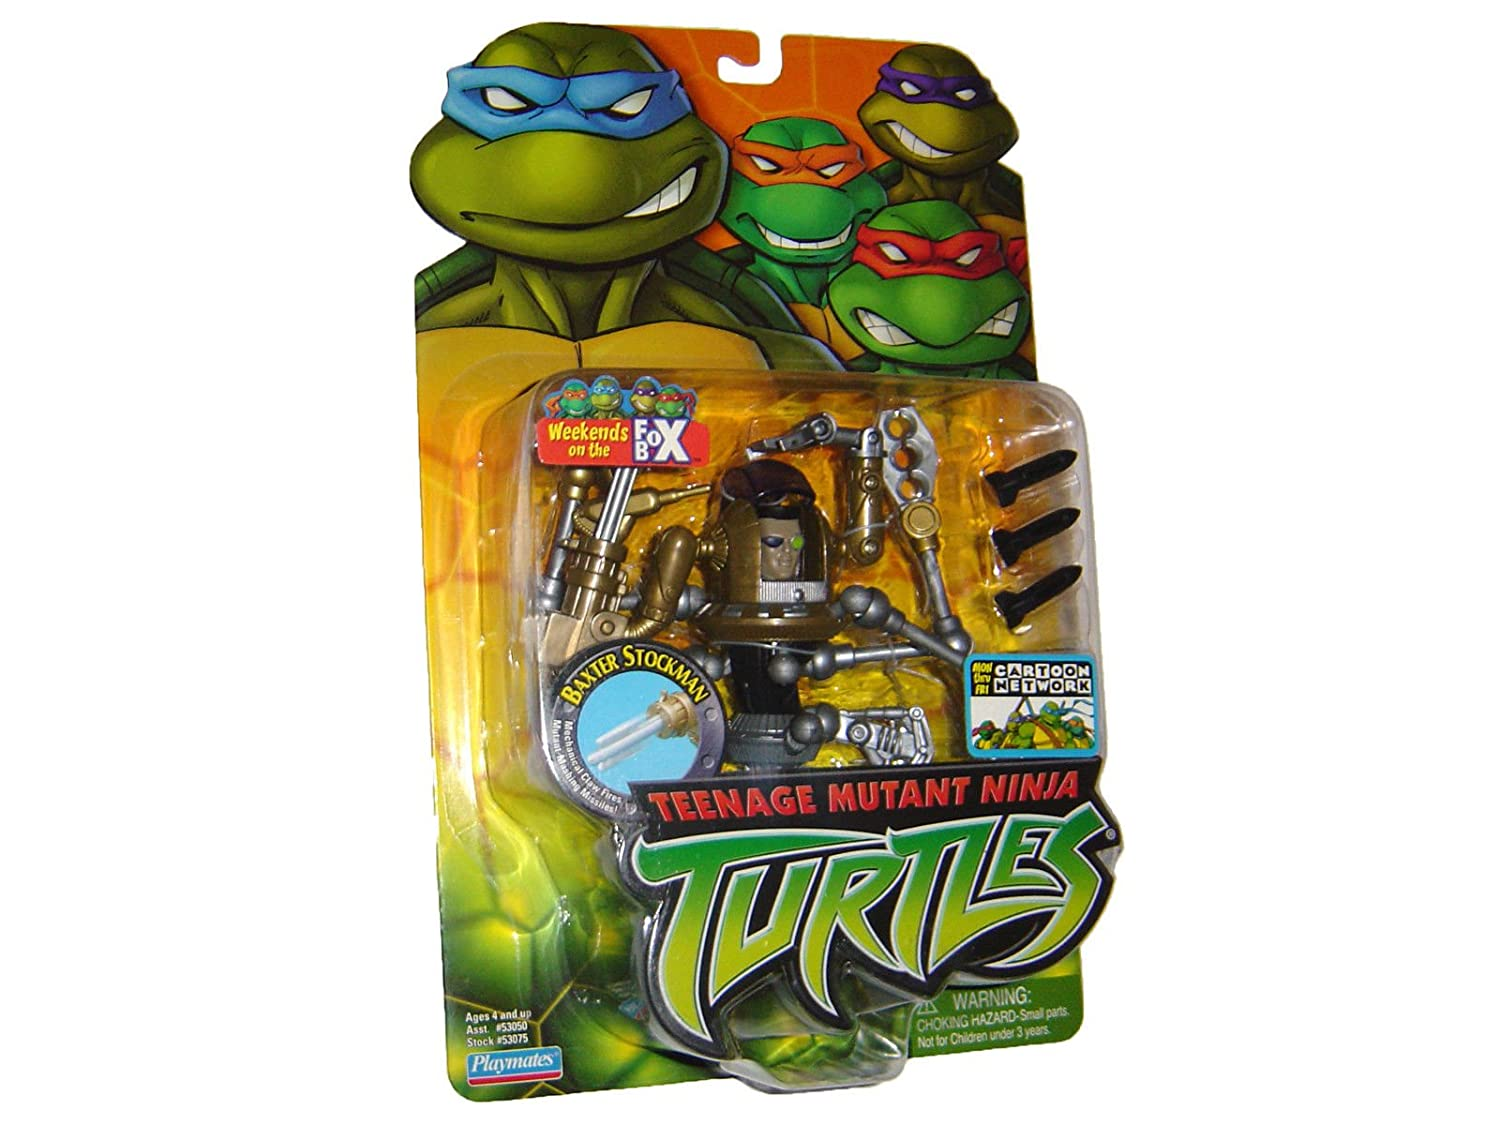 Teenage Mutant Ninja Turtles Baxter Stockman Playmates